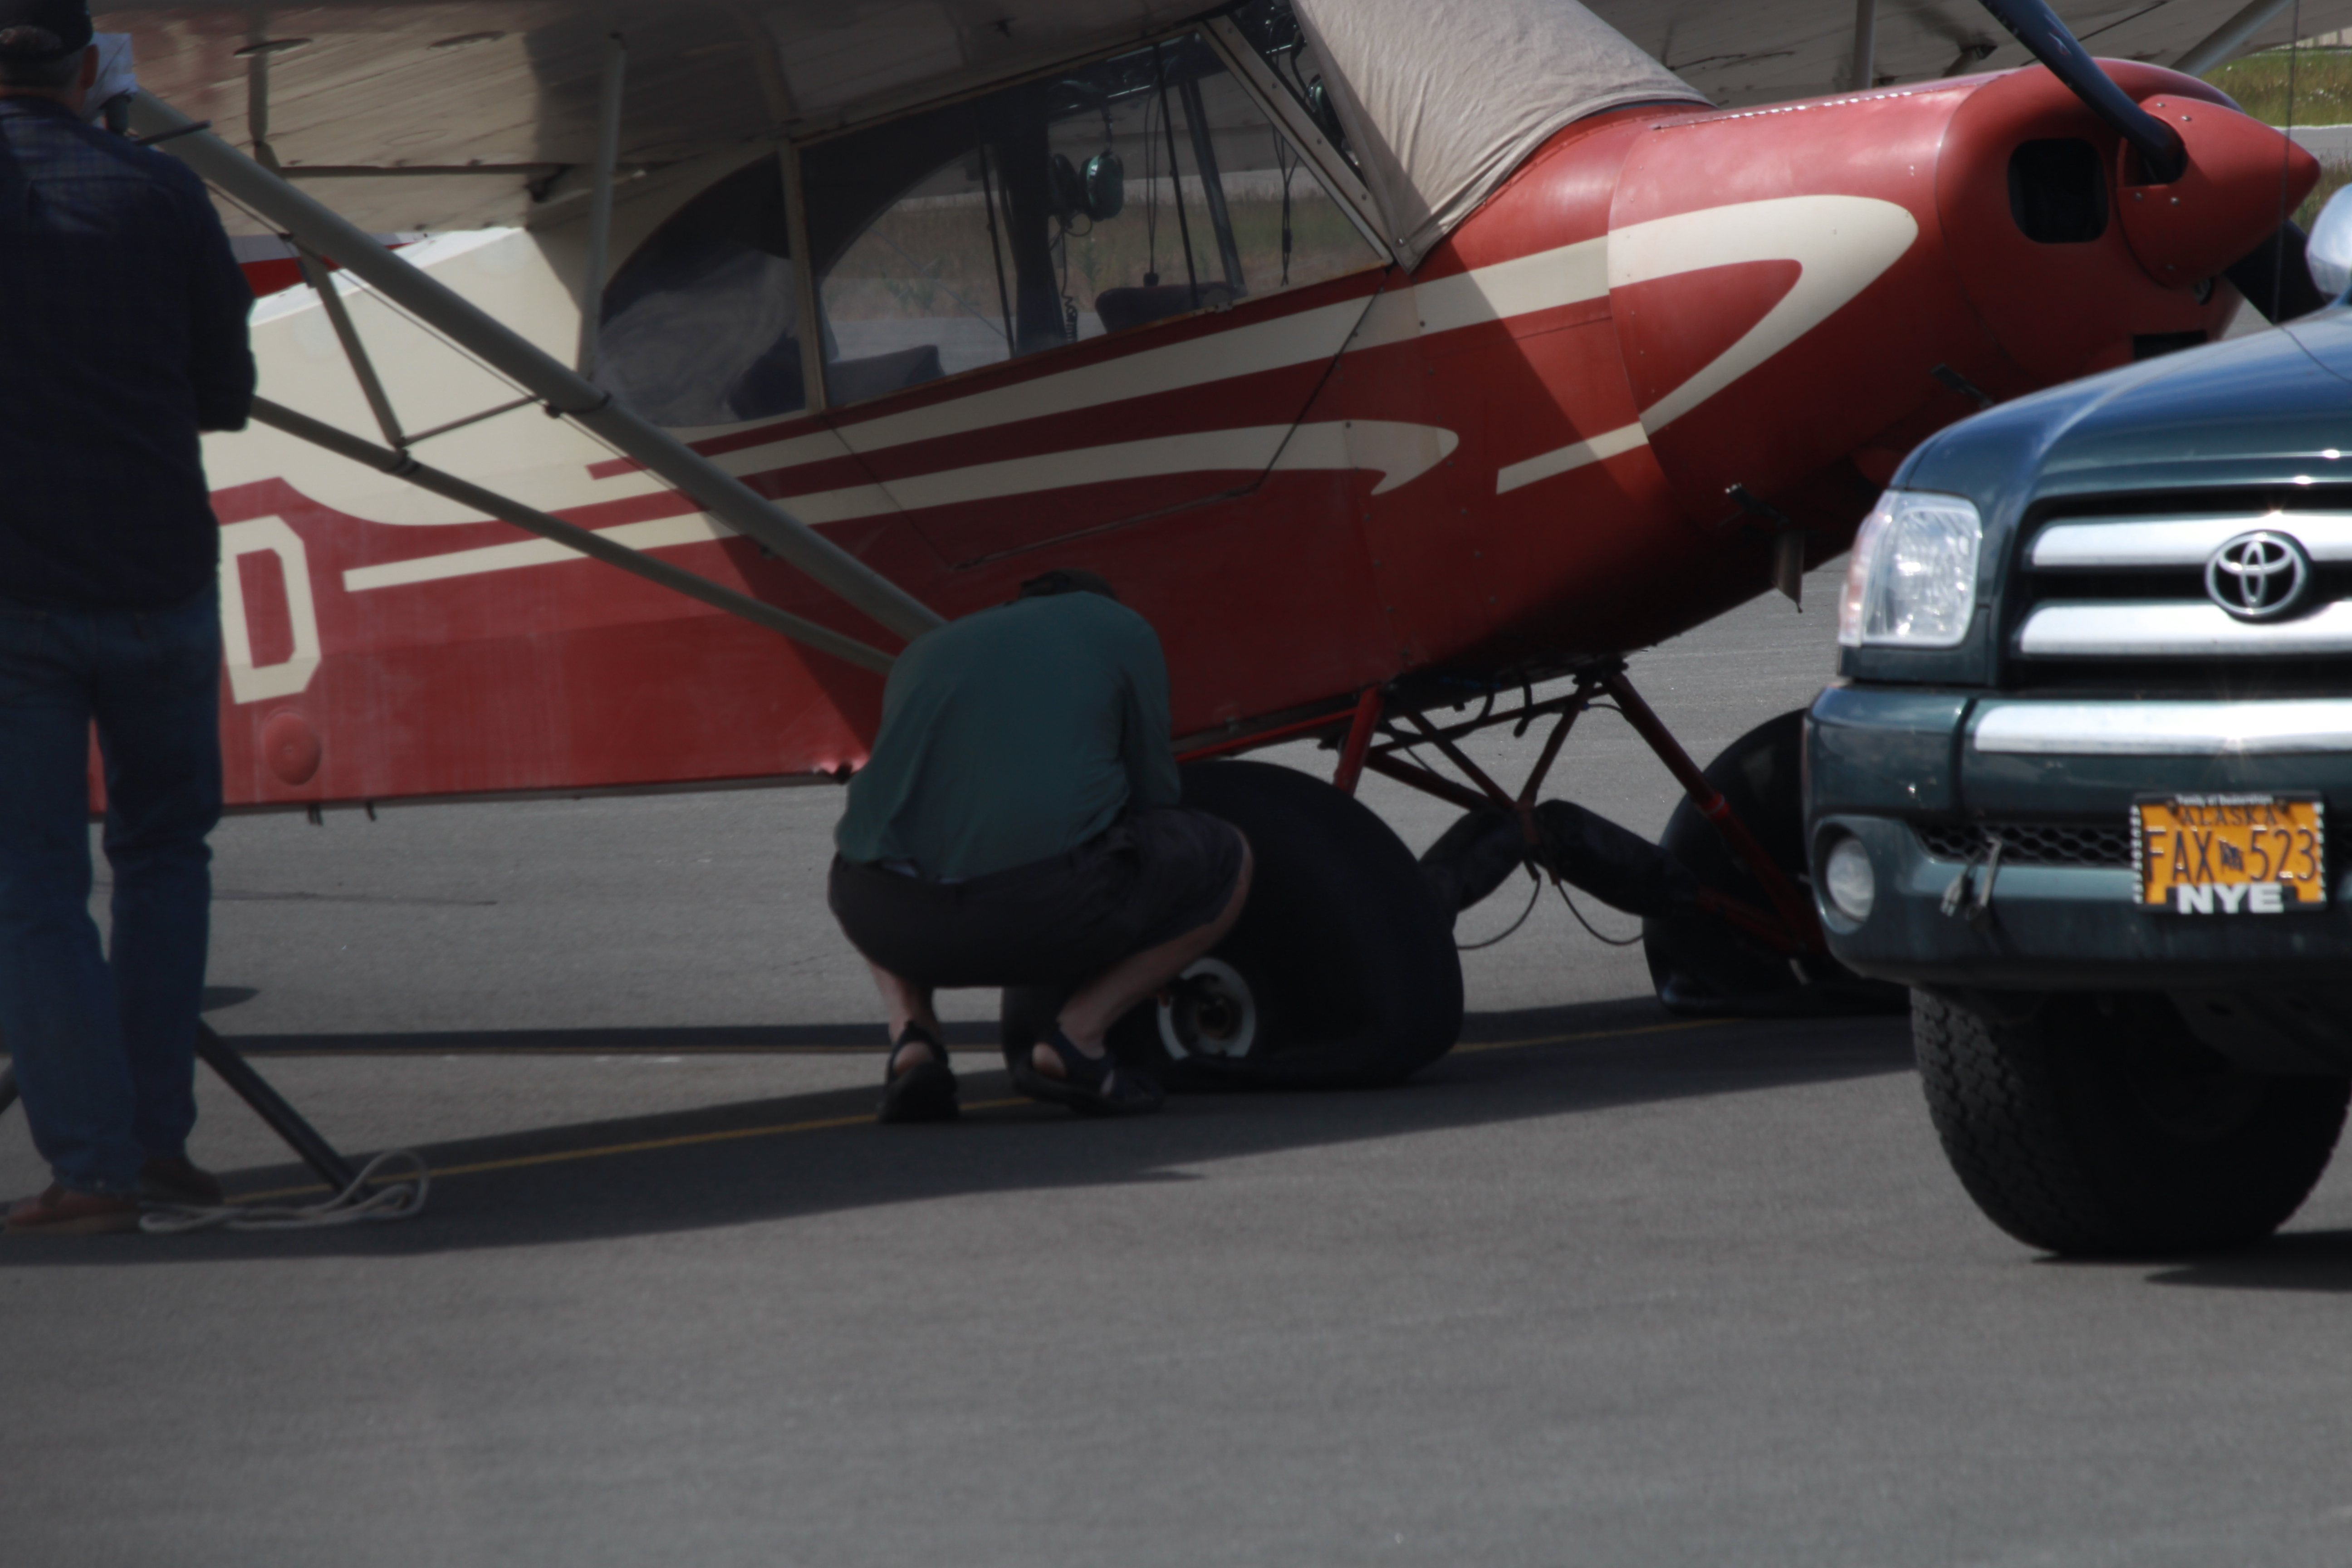 One of the victims of the tire slashings repairs his plane at Merrill Field (Photo by Wesley Early, Alaska Public Media - Anchorage)